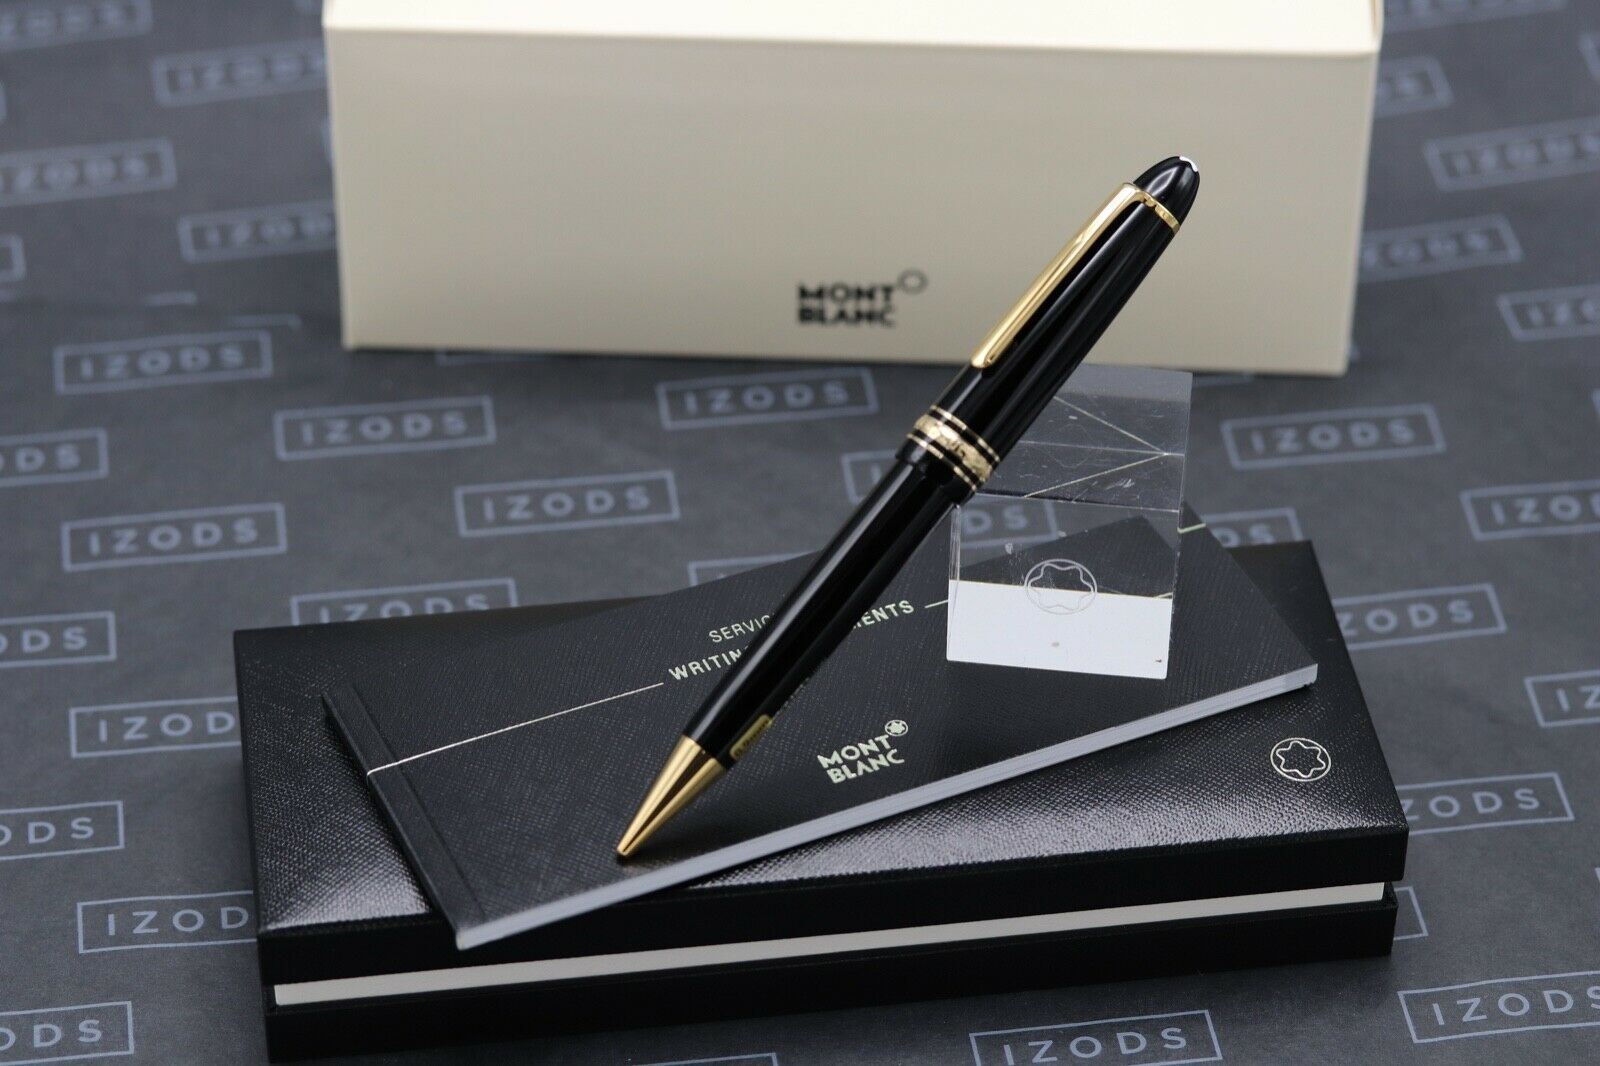 Montblanc Meisterstuck 167 LeGrand Gold Line Mechanical Pencil - NEW March 2021